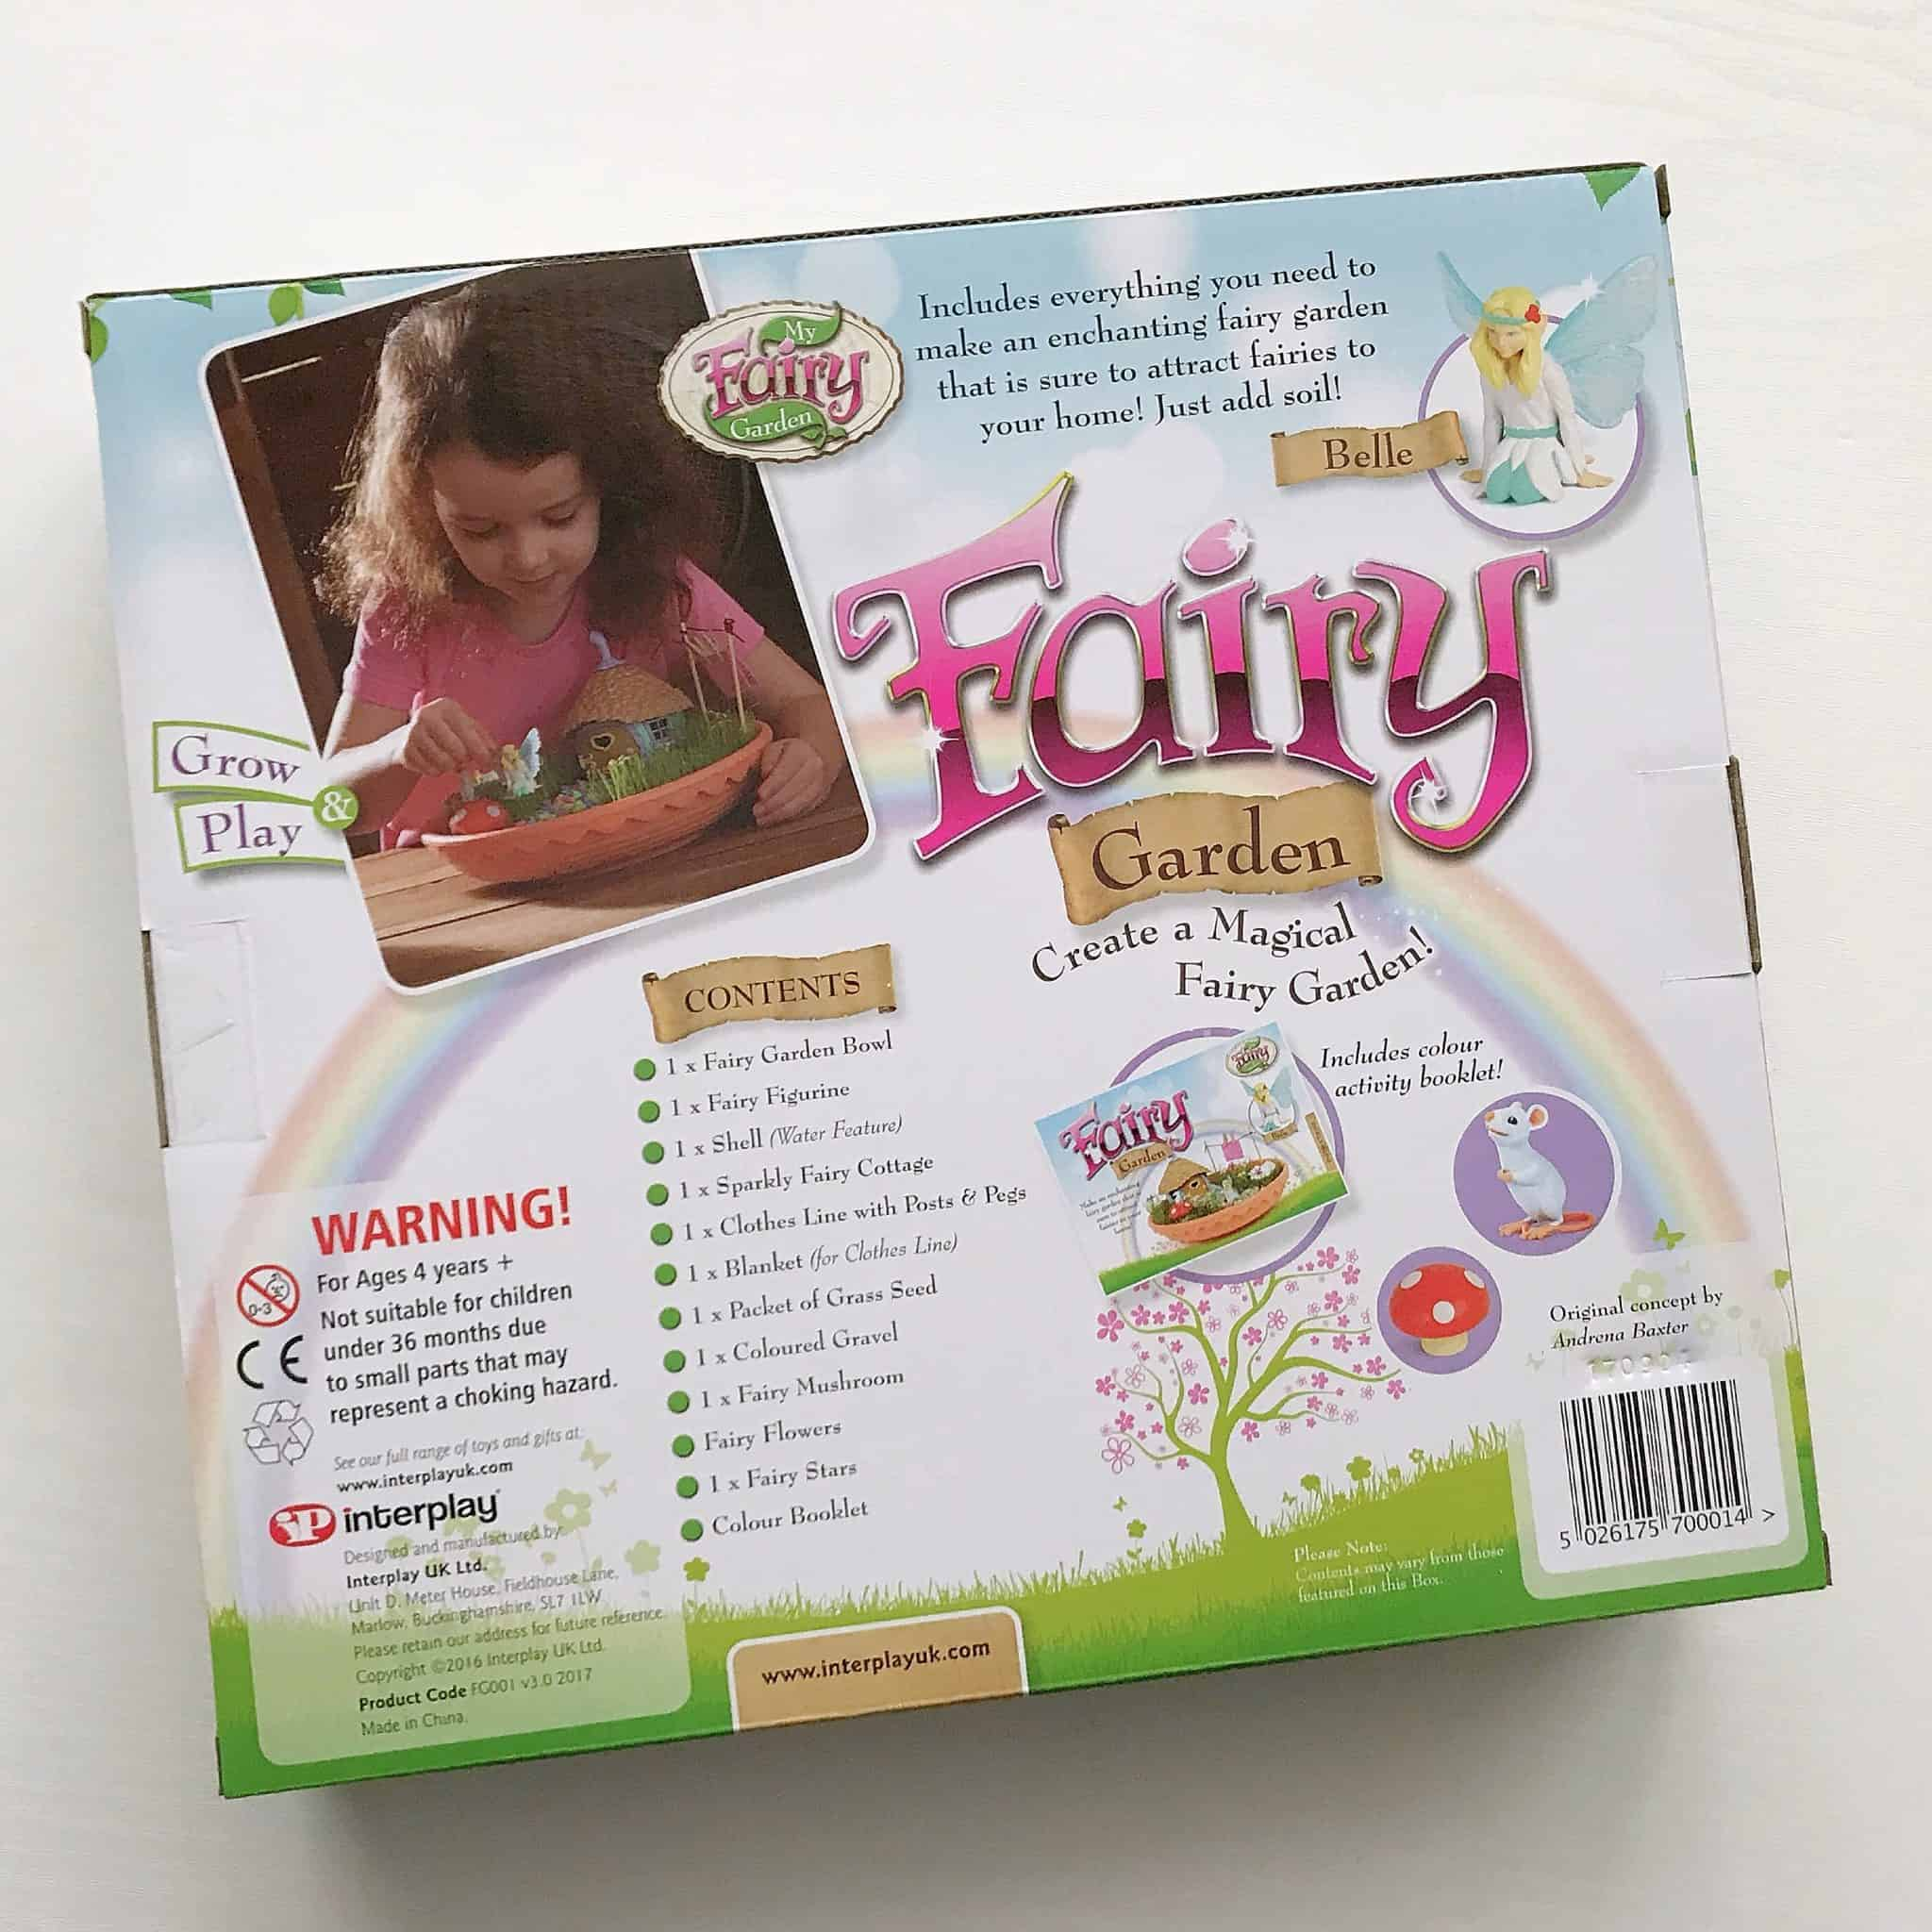 Back of My Fairy Garden Magical Fairy Garden box